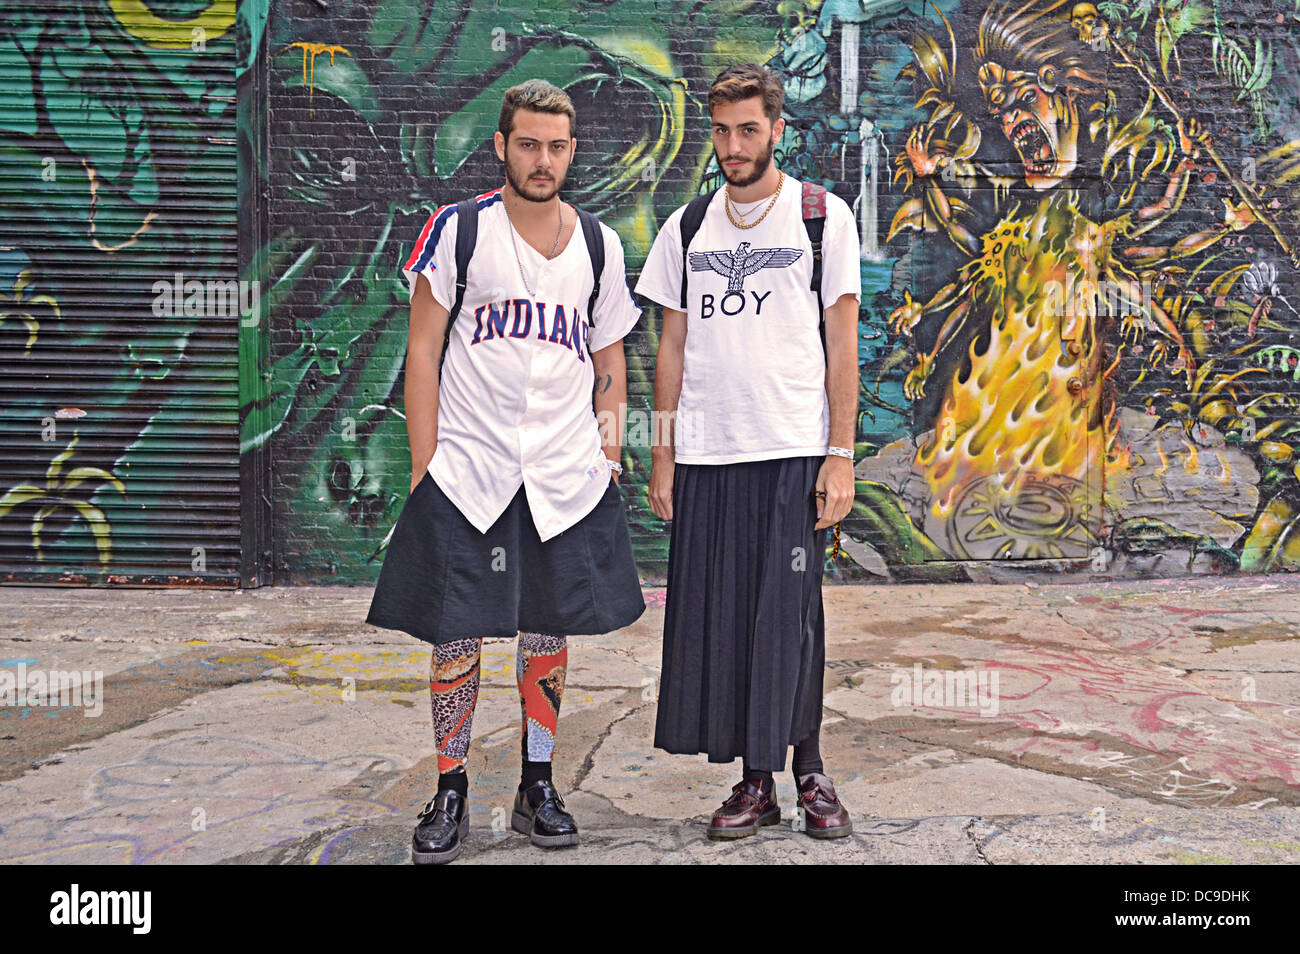 2 young men in skirts, photographed against a graffiti background at 5 Pointz in Long Island City, Queens, New York - Stock Image